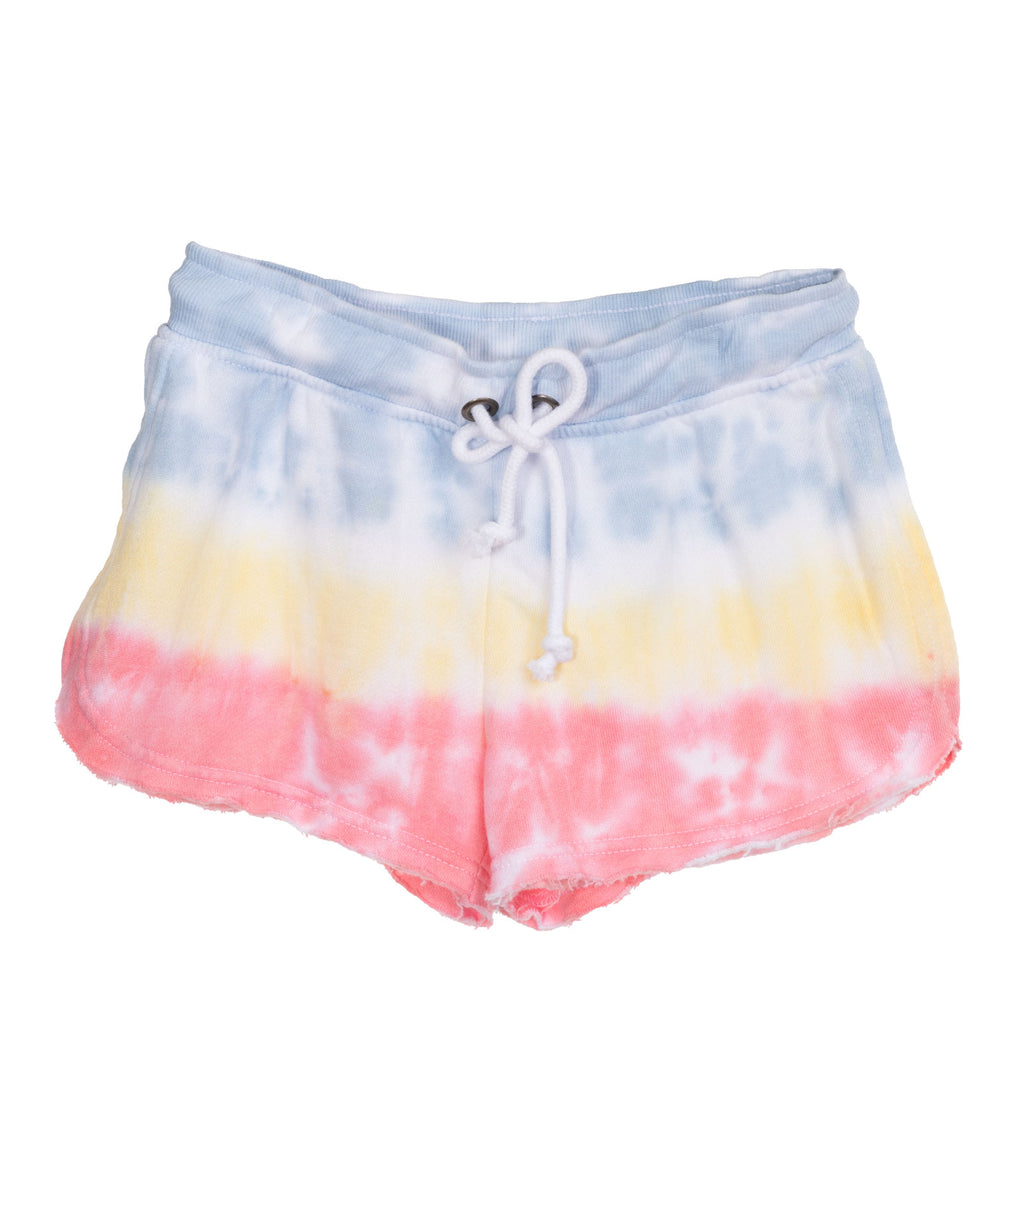 Katie J NYC Girls Lisa Pastel Tie Dye Shorts